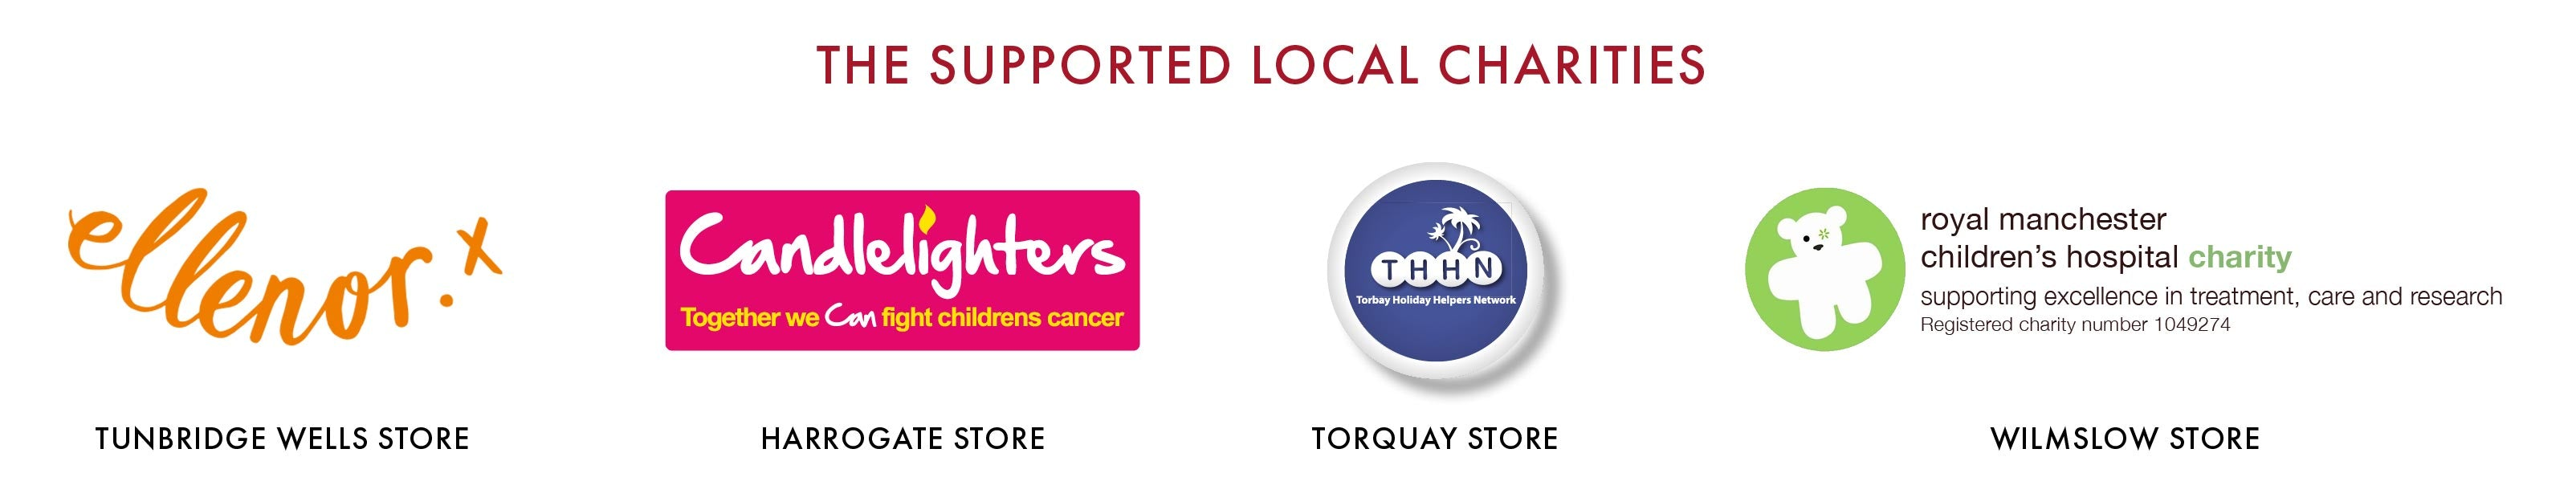 Supported local charities